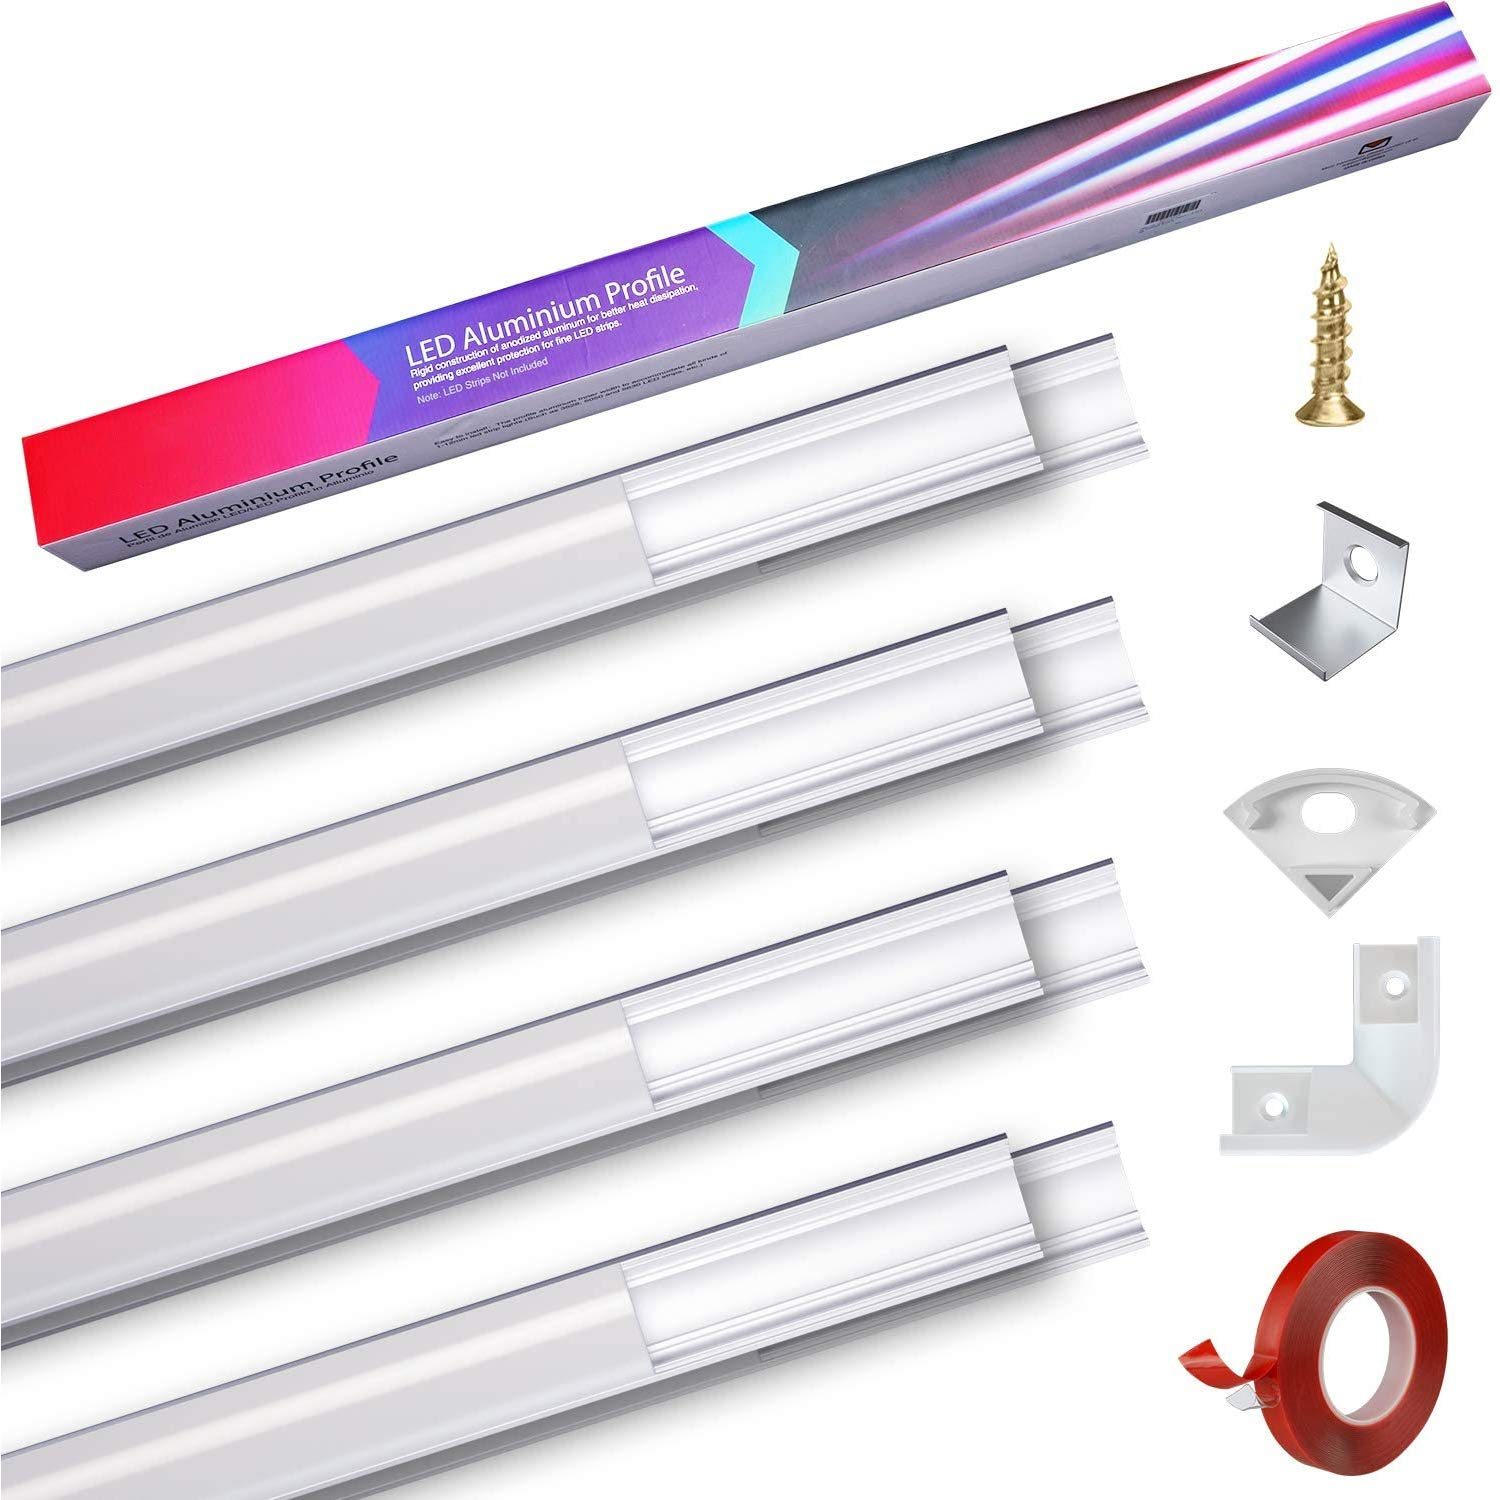 LED Aluminum Profile,Led Aluminum Channel V-Shape 8-pack 1M//3.3ft with PC Cover.LED Channels and Diffusers with 3M Adhesive,End Caps,Mounting Clips,for Flexible//Hard LED Strip Lights Lighting PEBA